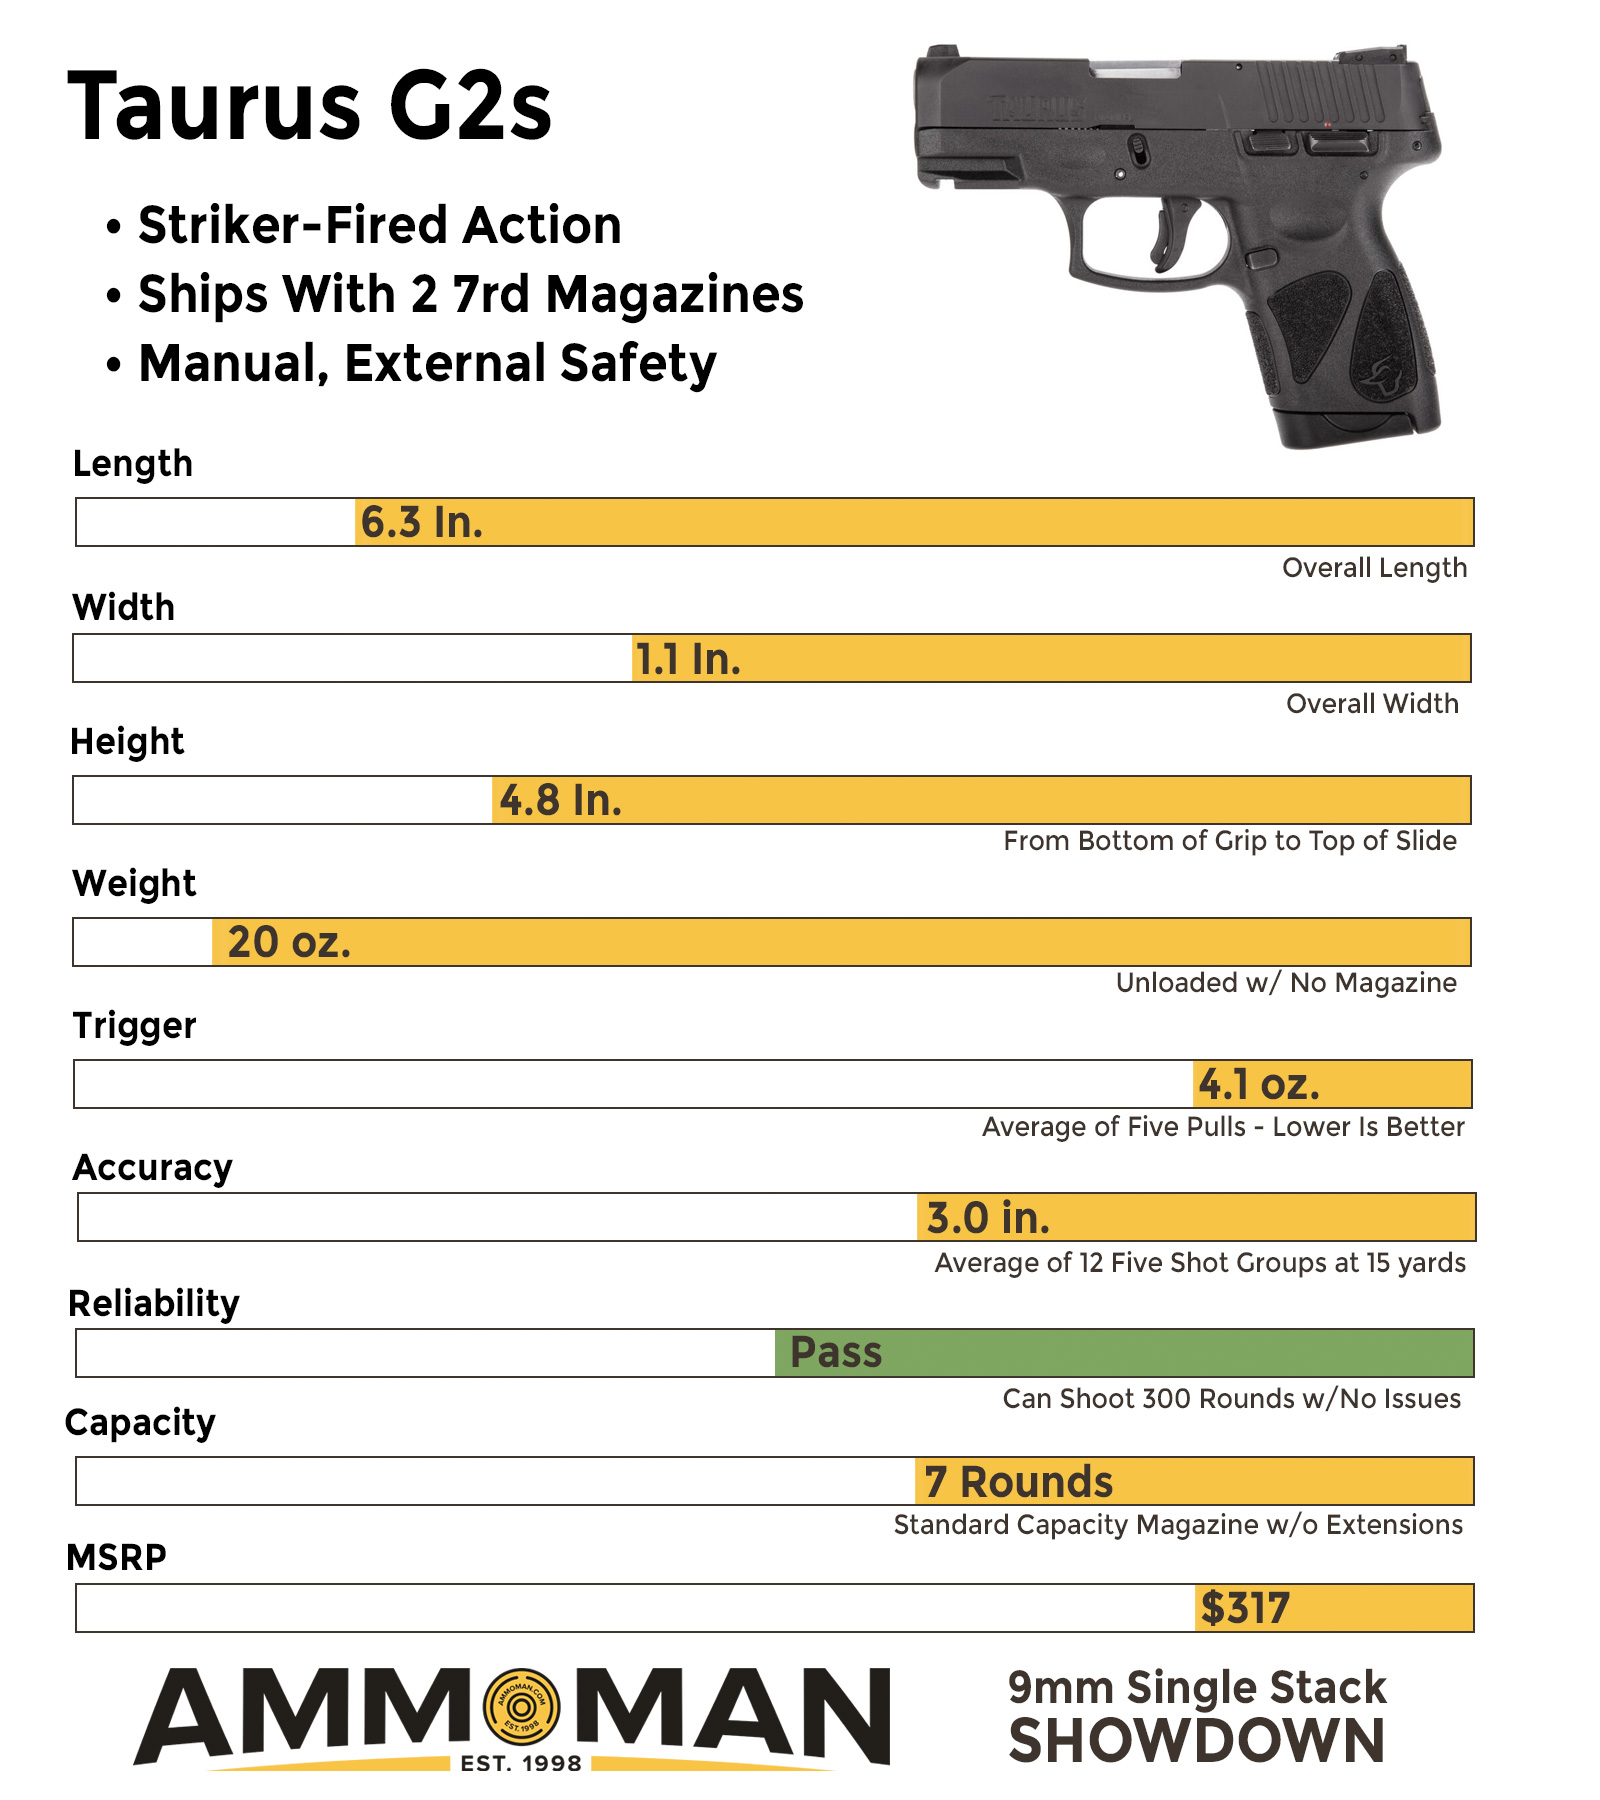 How the Taurus G2s compares to other compact 9mm pistols